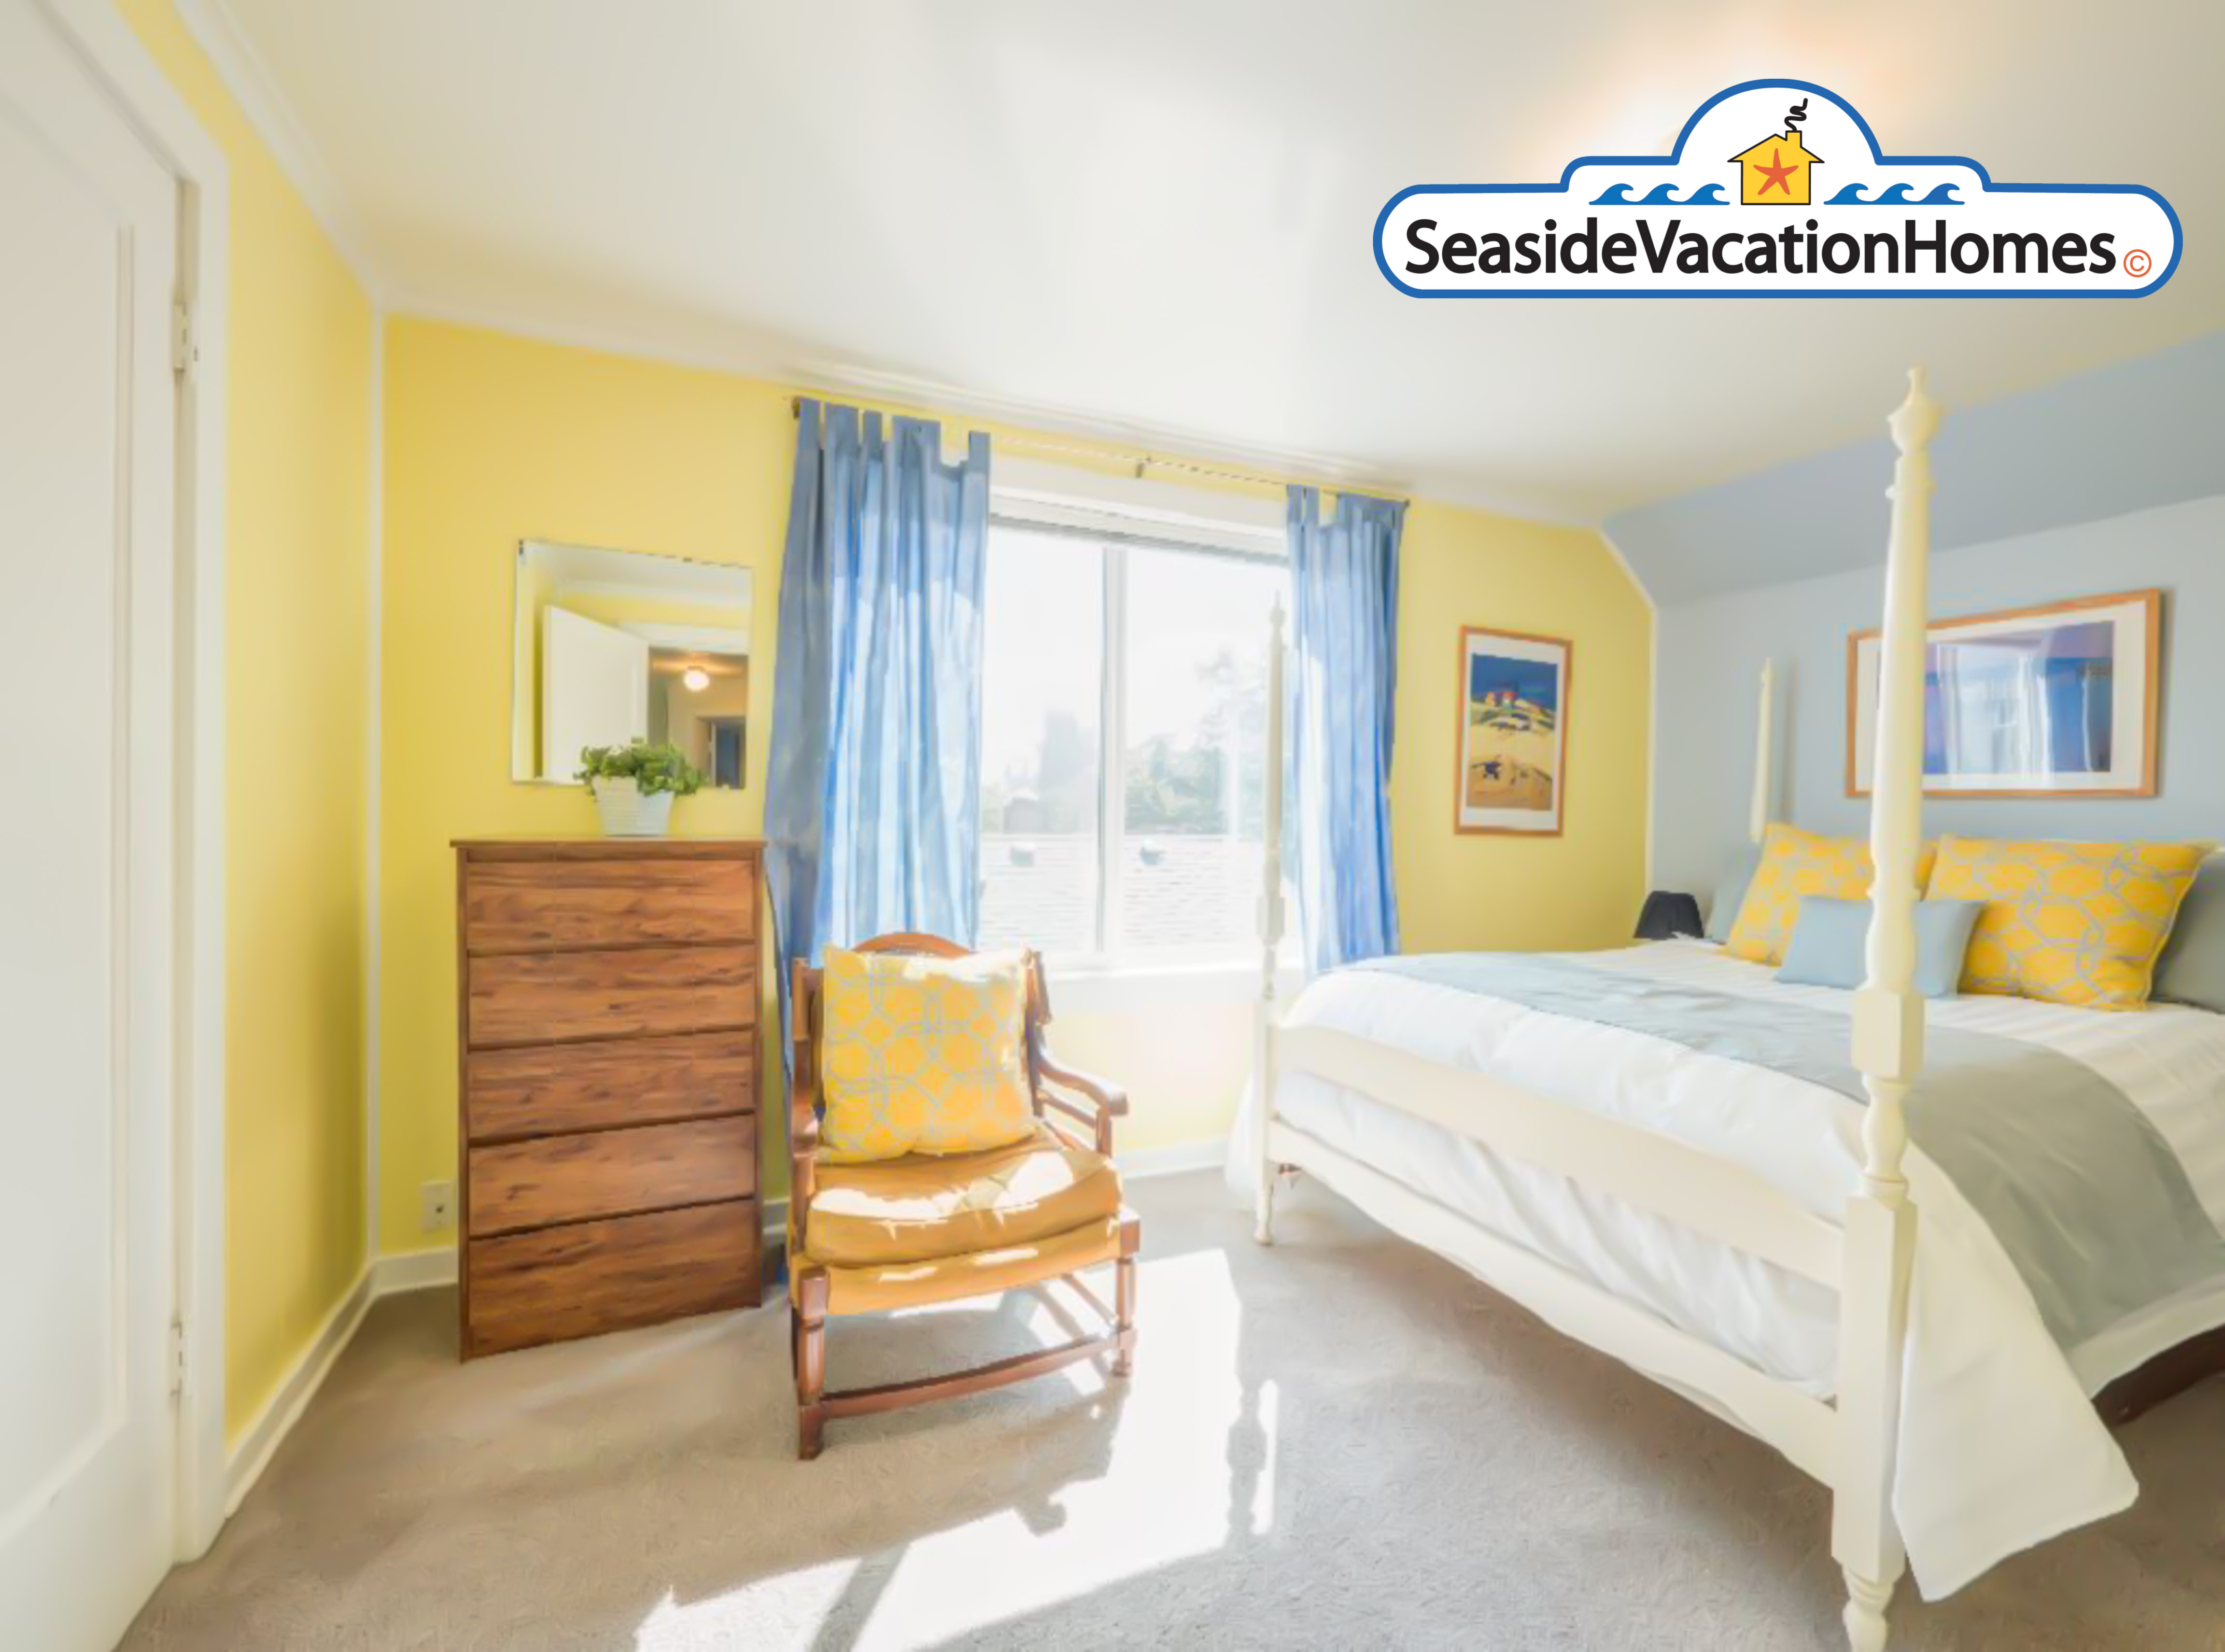 Seaside vacation rentals in OR